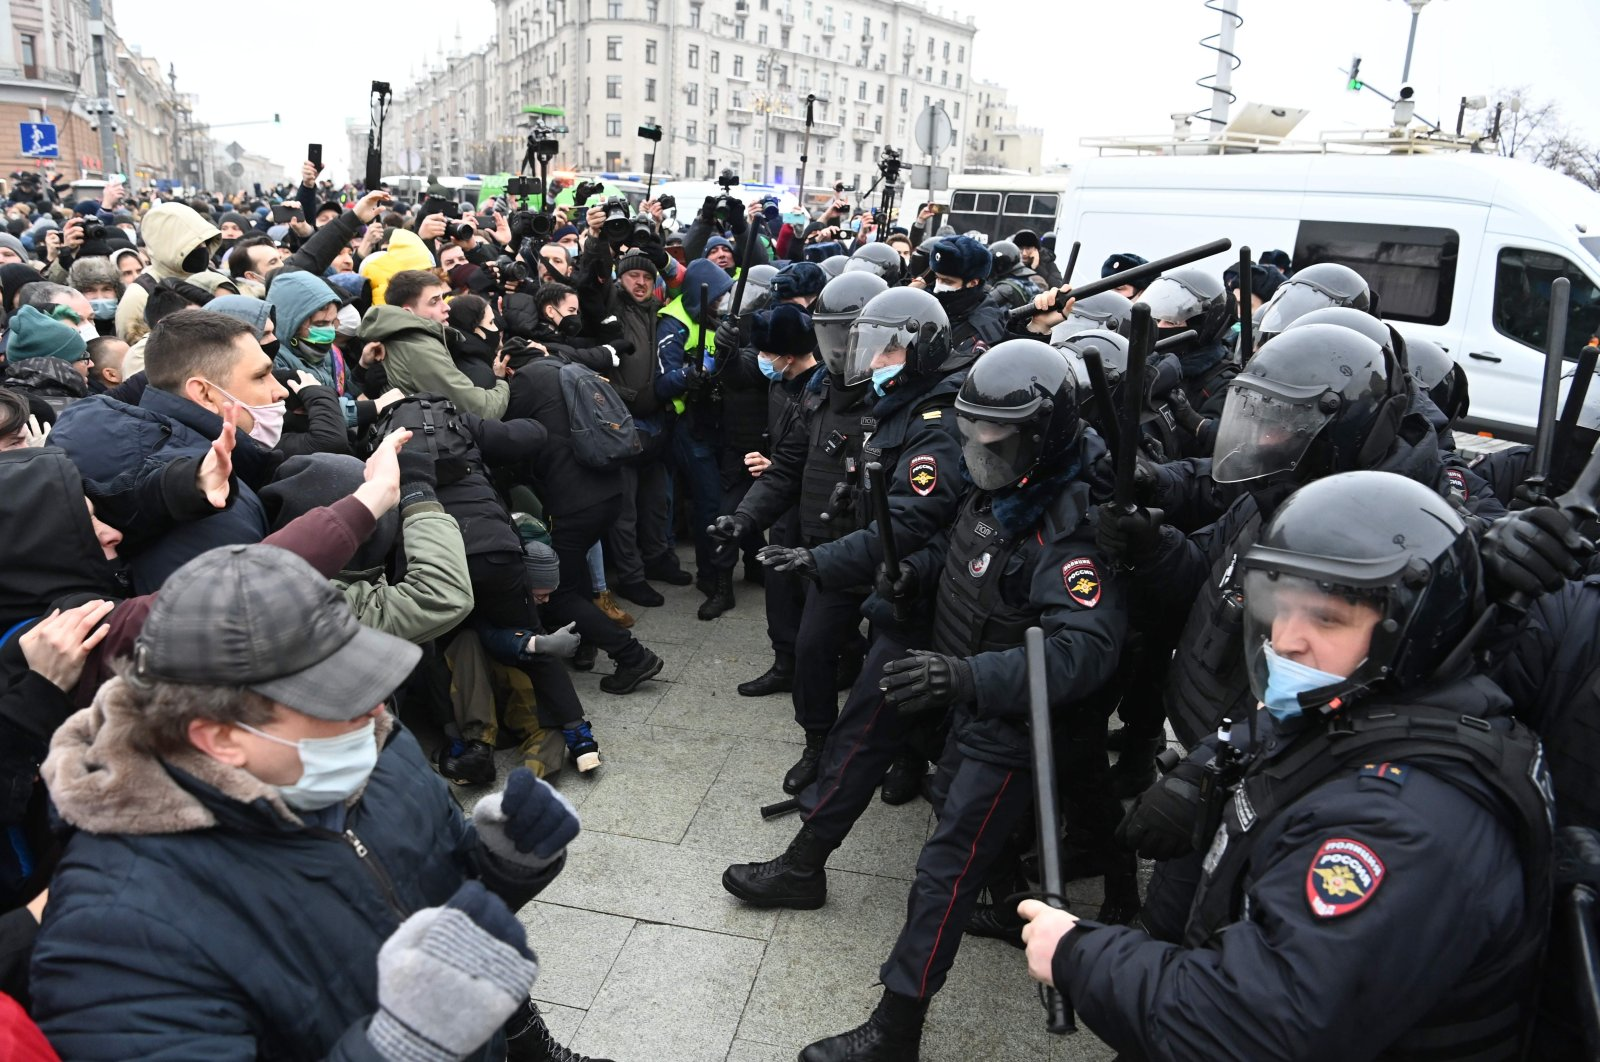 Protesters clash with riot police during a rally in support of jailed opposition leader Alexei Navalny in downtown Moscow, Russia, Jan. 23, 2021. (AFP Photo)